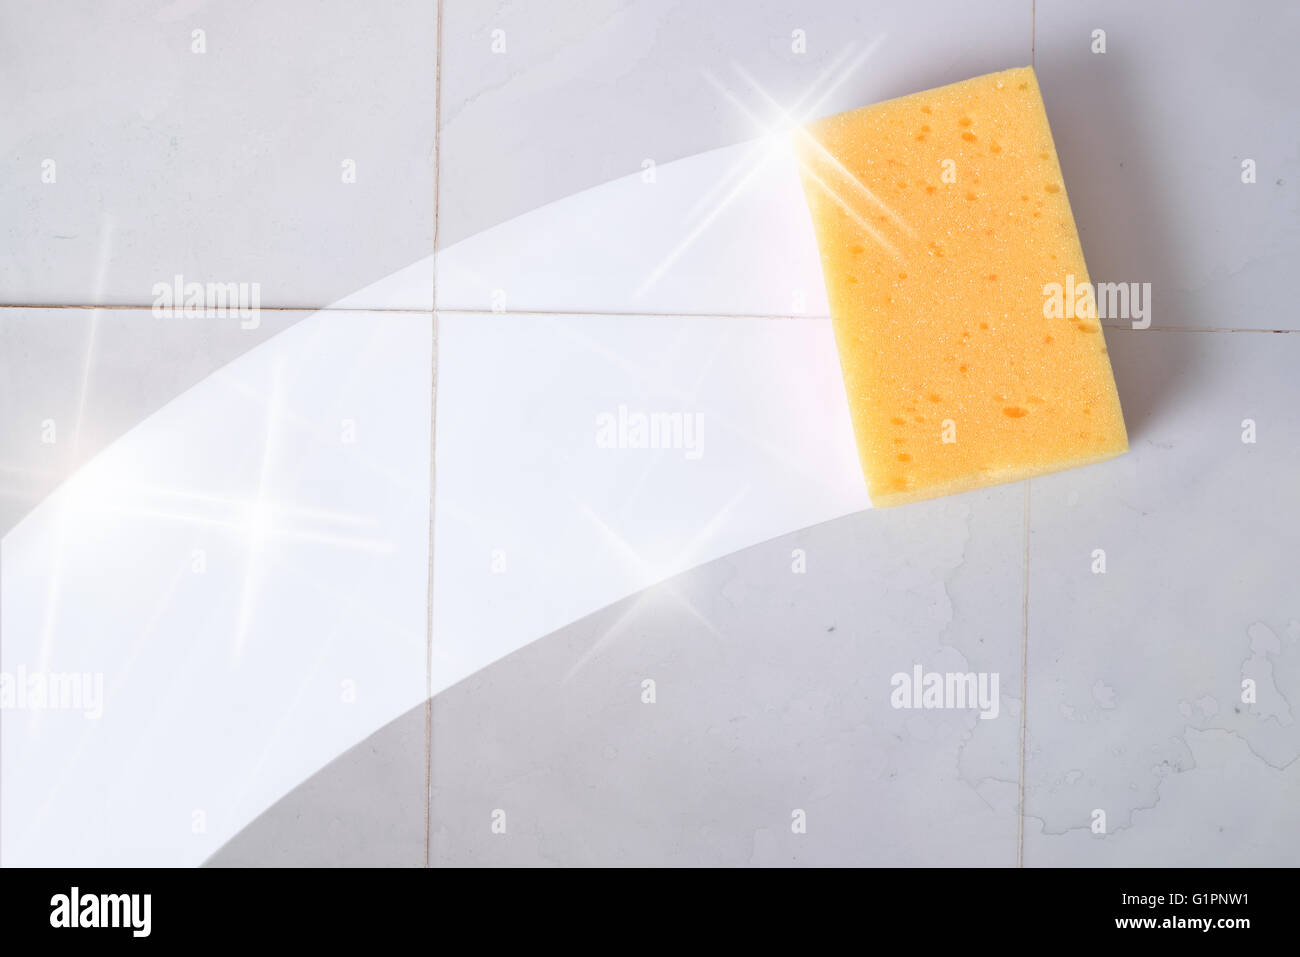 Cleaning concept trace yellow sponge on a dirty gray wall tiles. Horizontal composition. - Stock Image